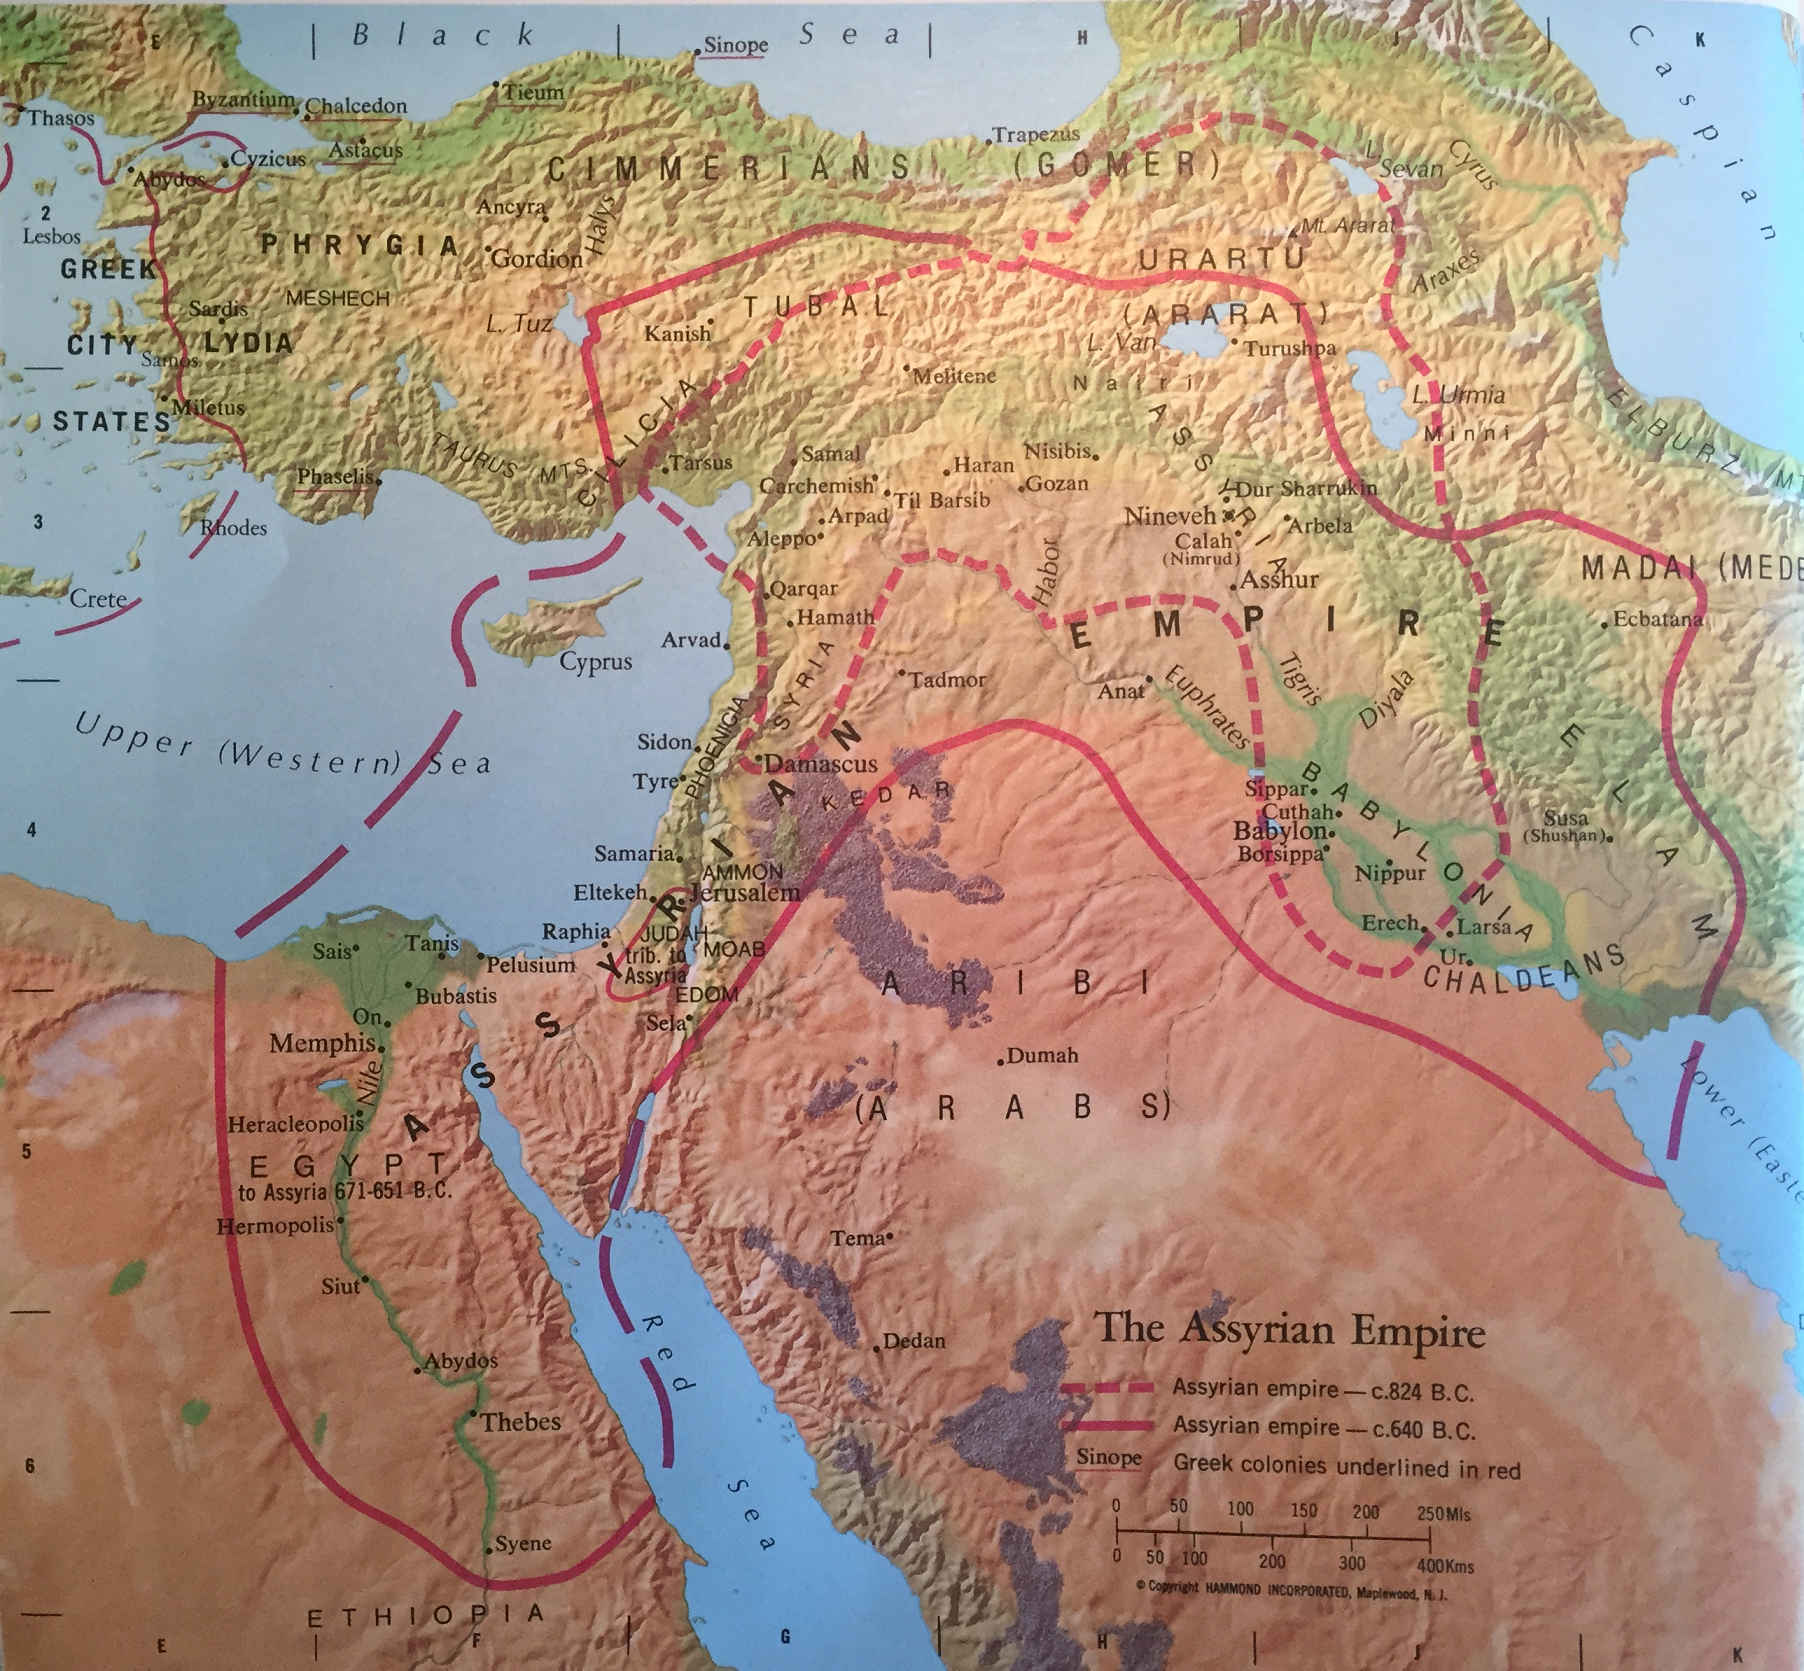 Bible Map: The Assyrian Empire